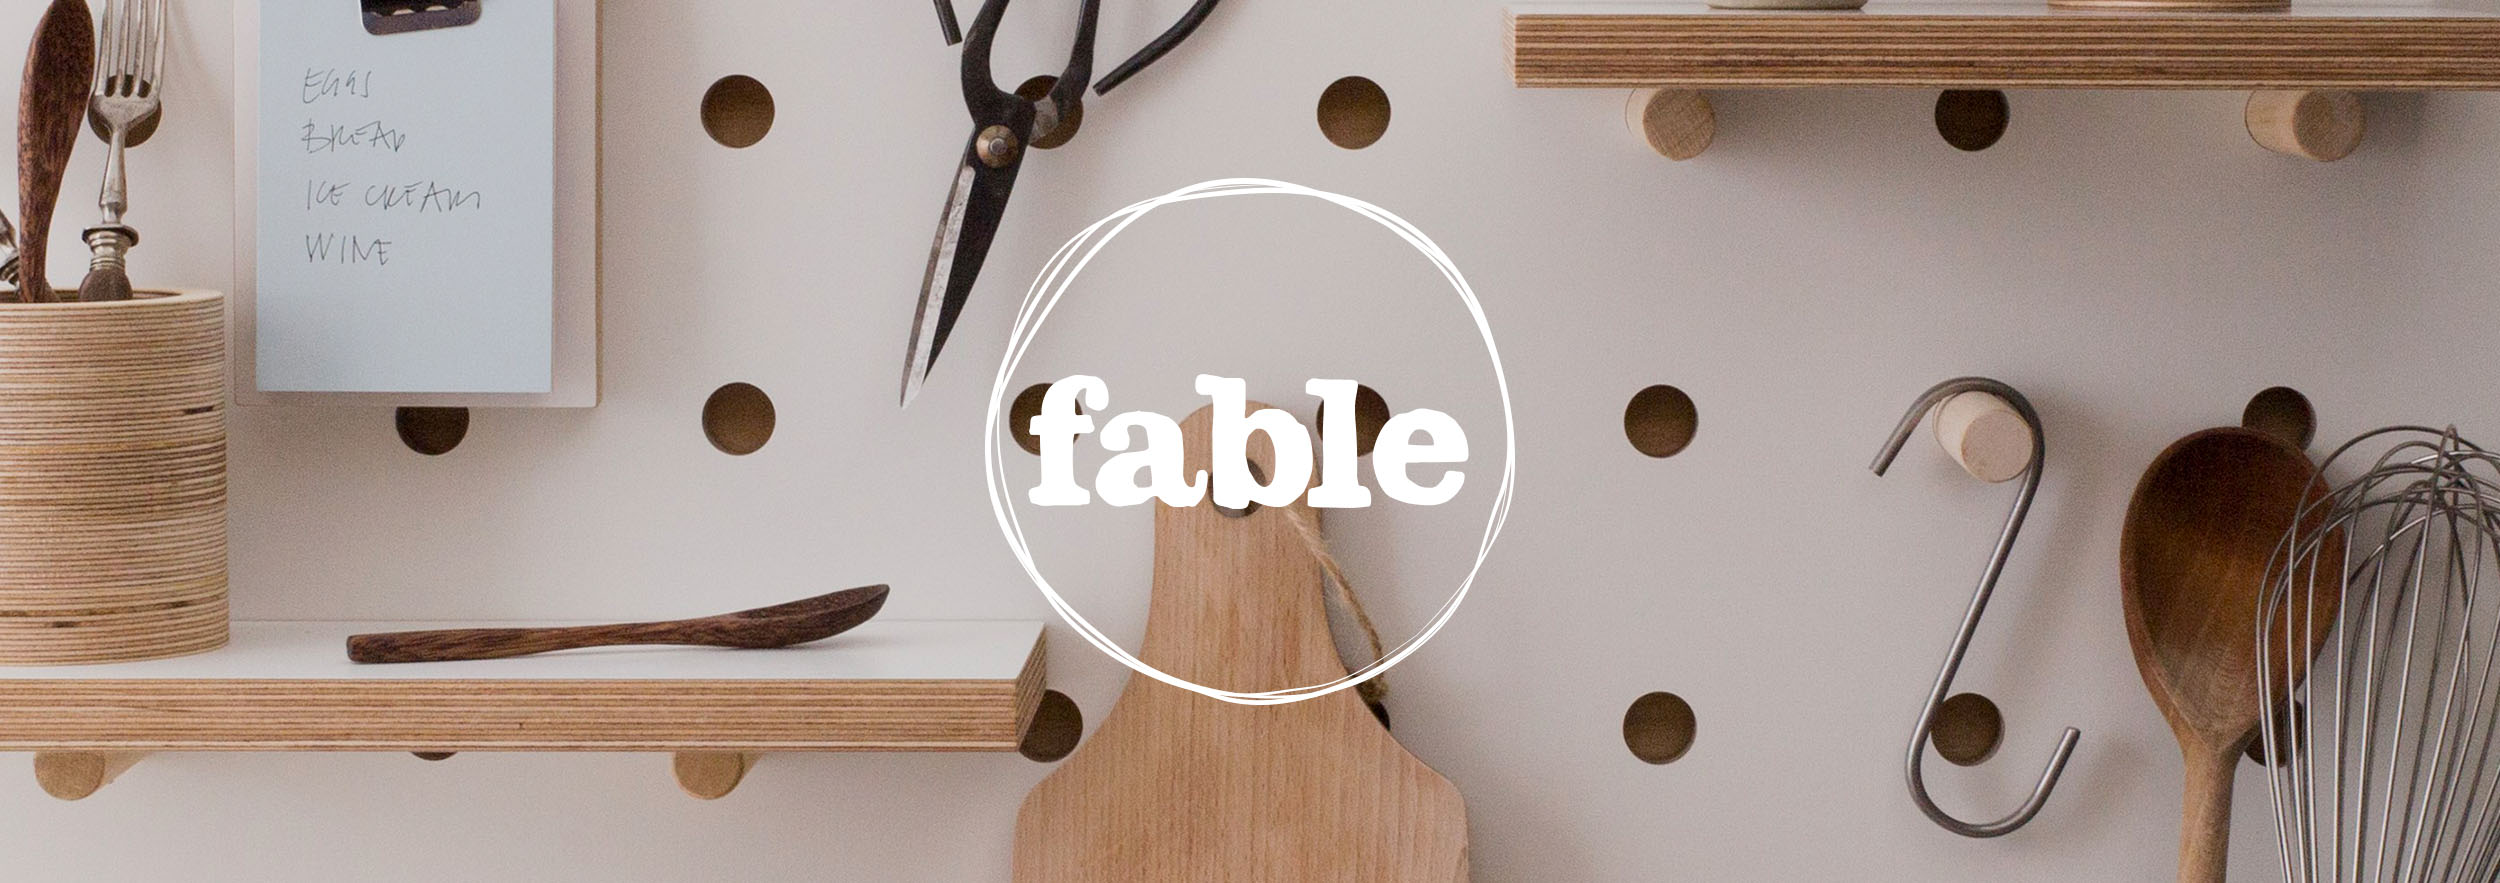 Fable Web TemplateArtboard 4.jpg